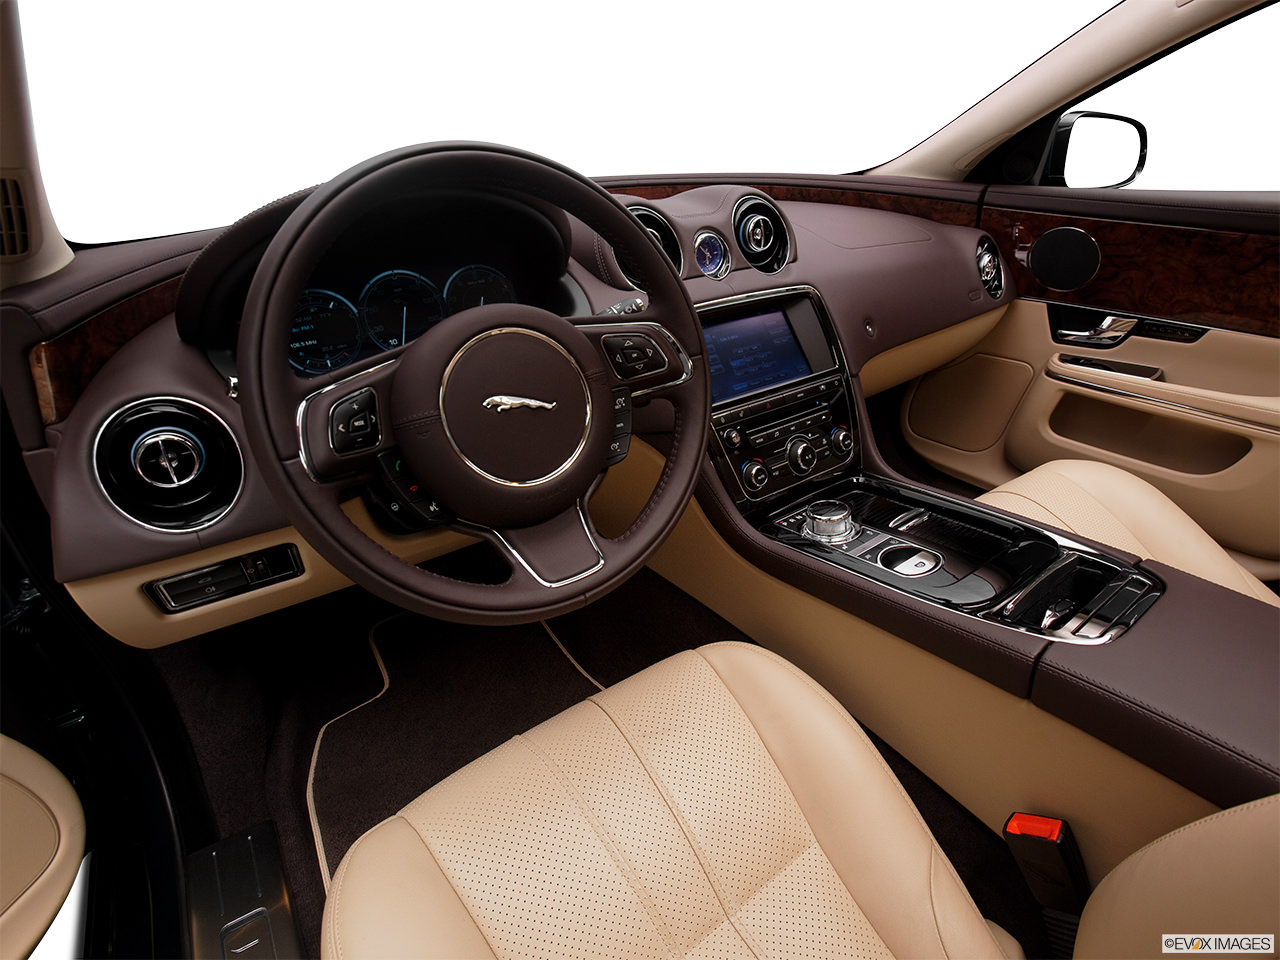 Jaguar XJ 2012 Interior